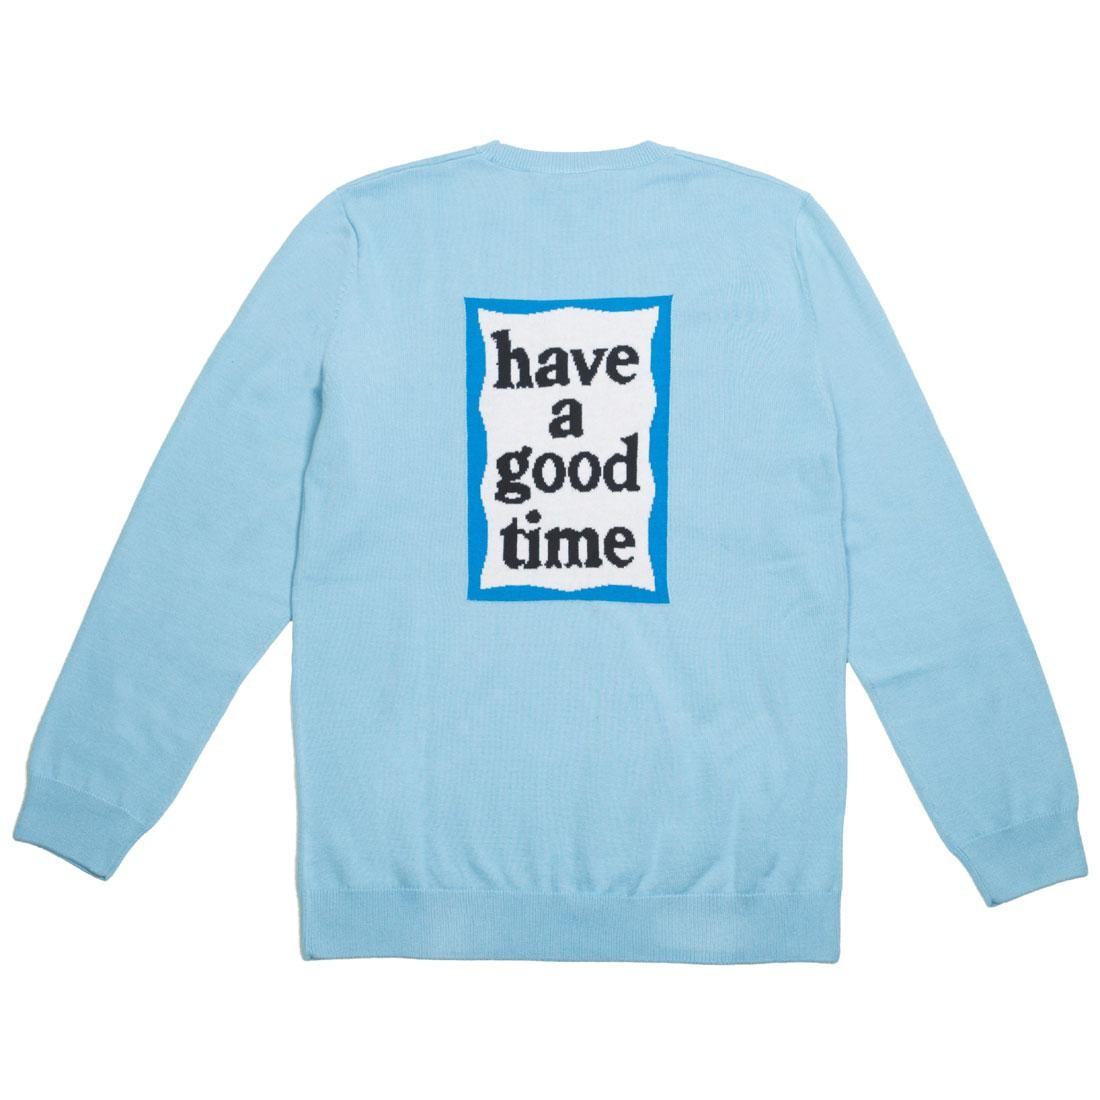 Adidas x Have A Good Time Men Summer Knit Sweater (blue / clear blue)